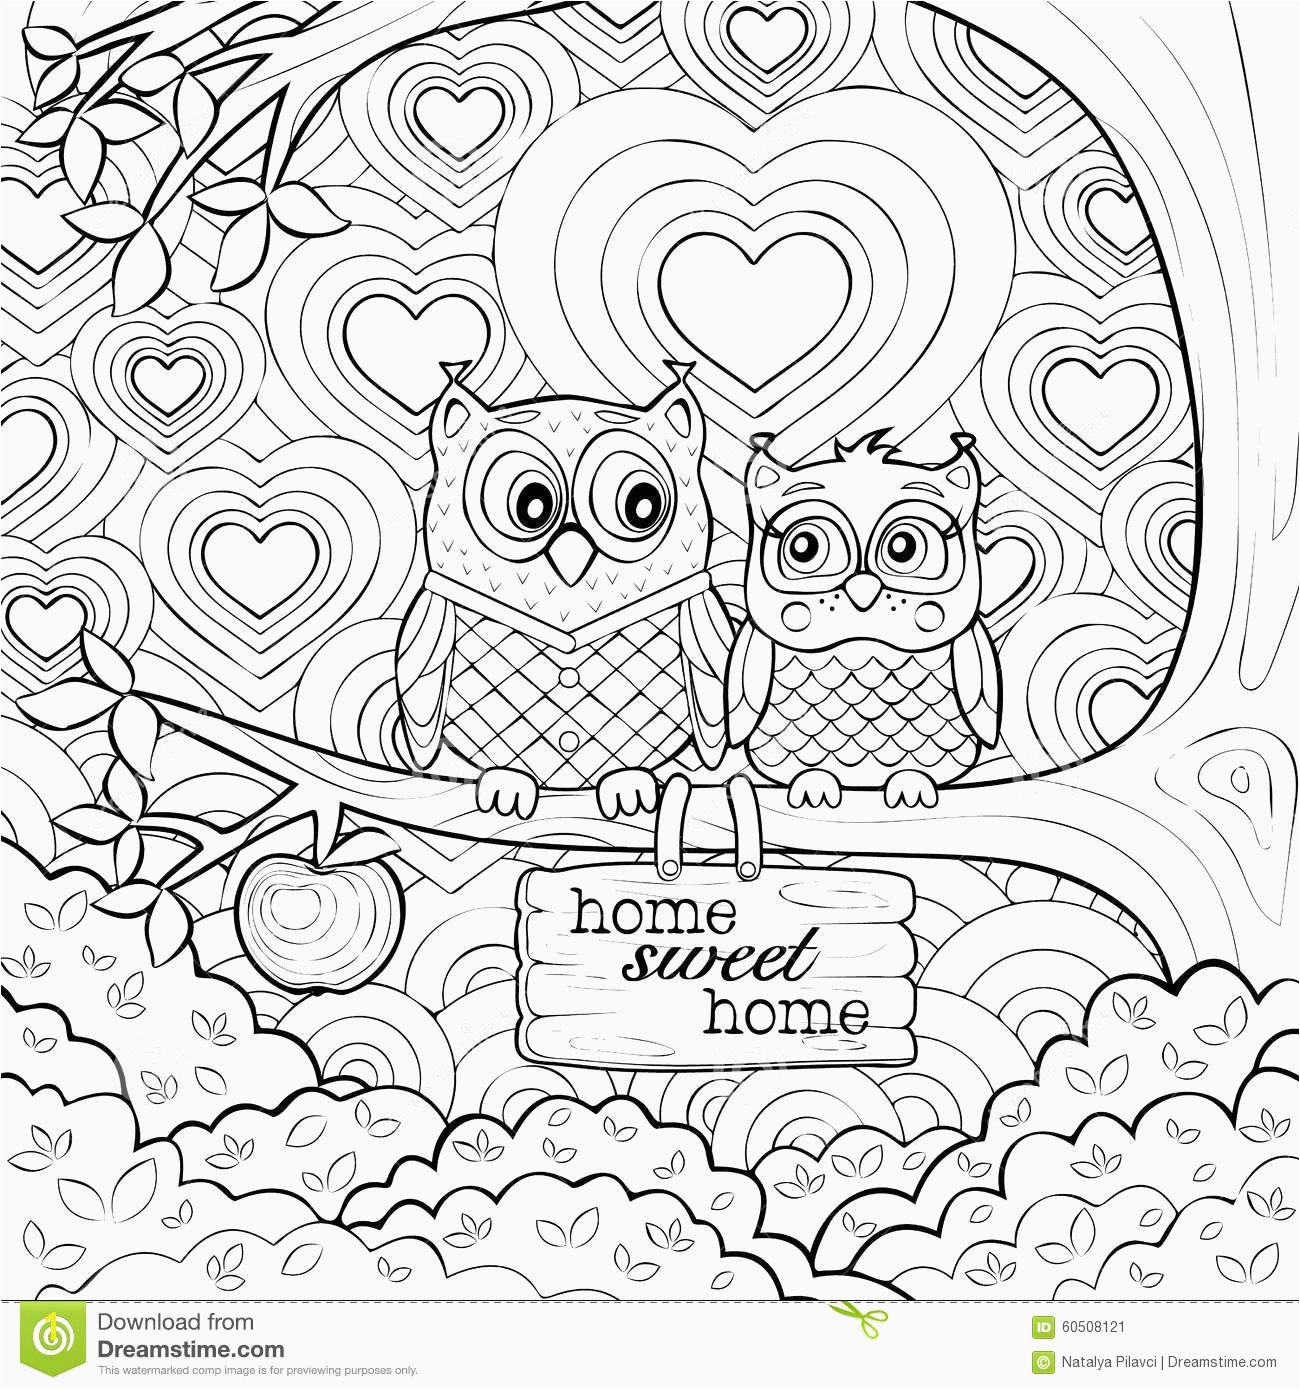 Quotes Coloring Pages Cute Owls Art therapy Coloring Page Stock Vector Illustration Elegant Beautiful Best